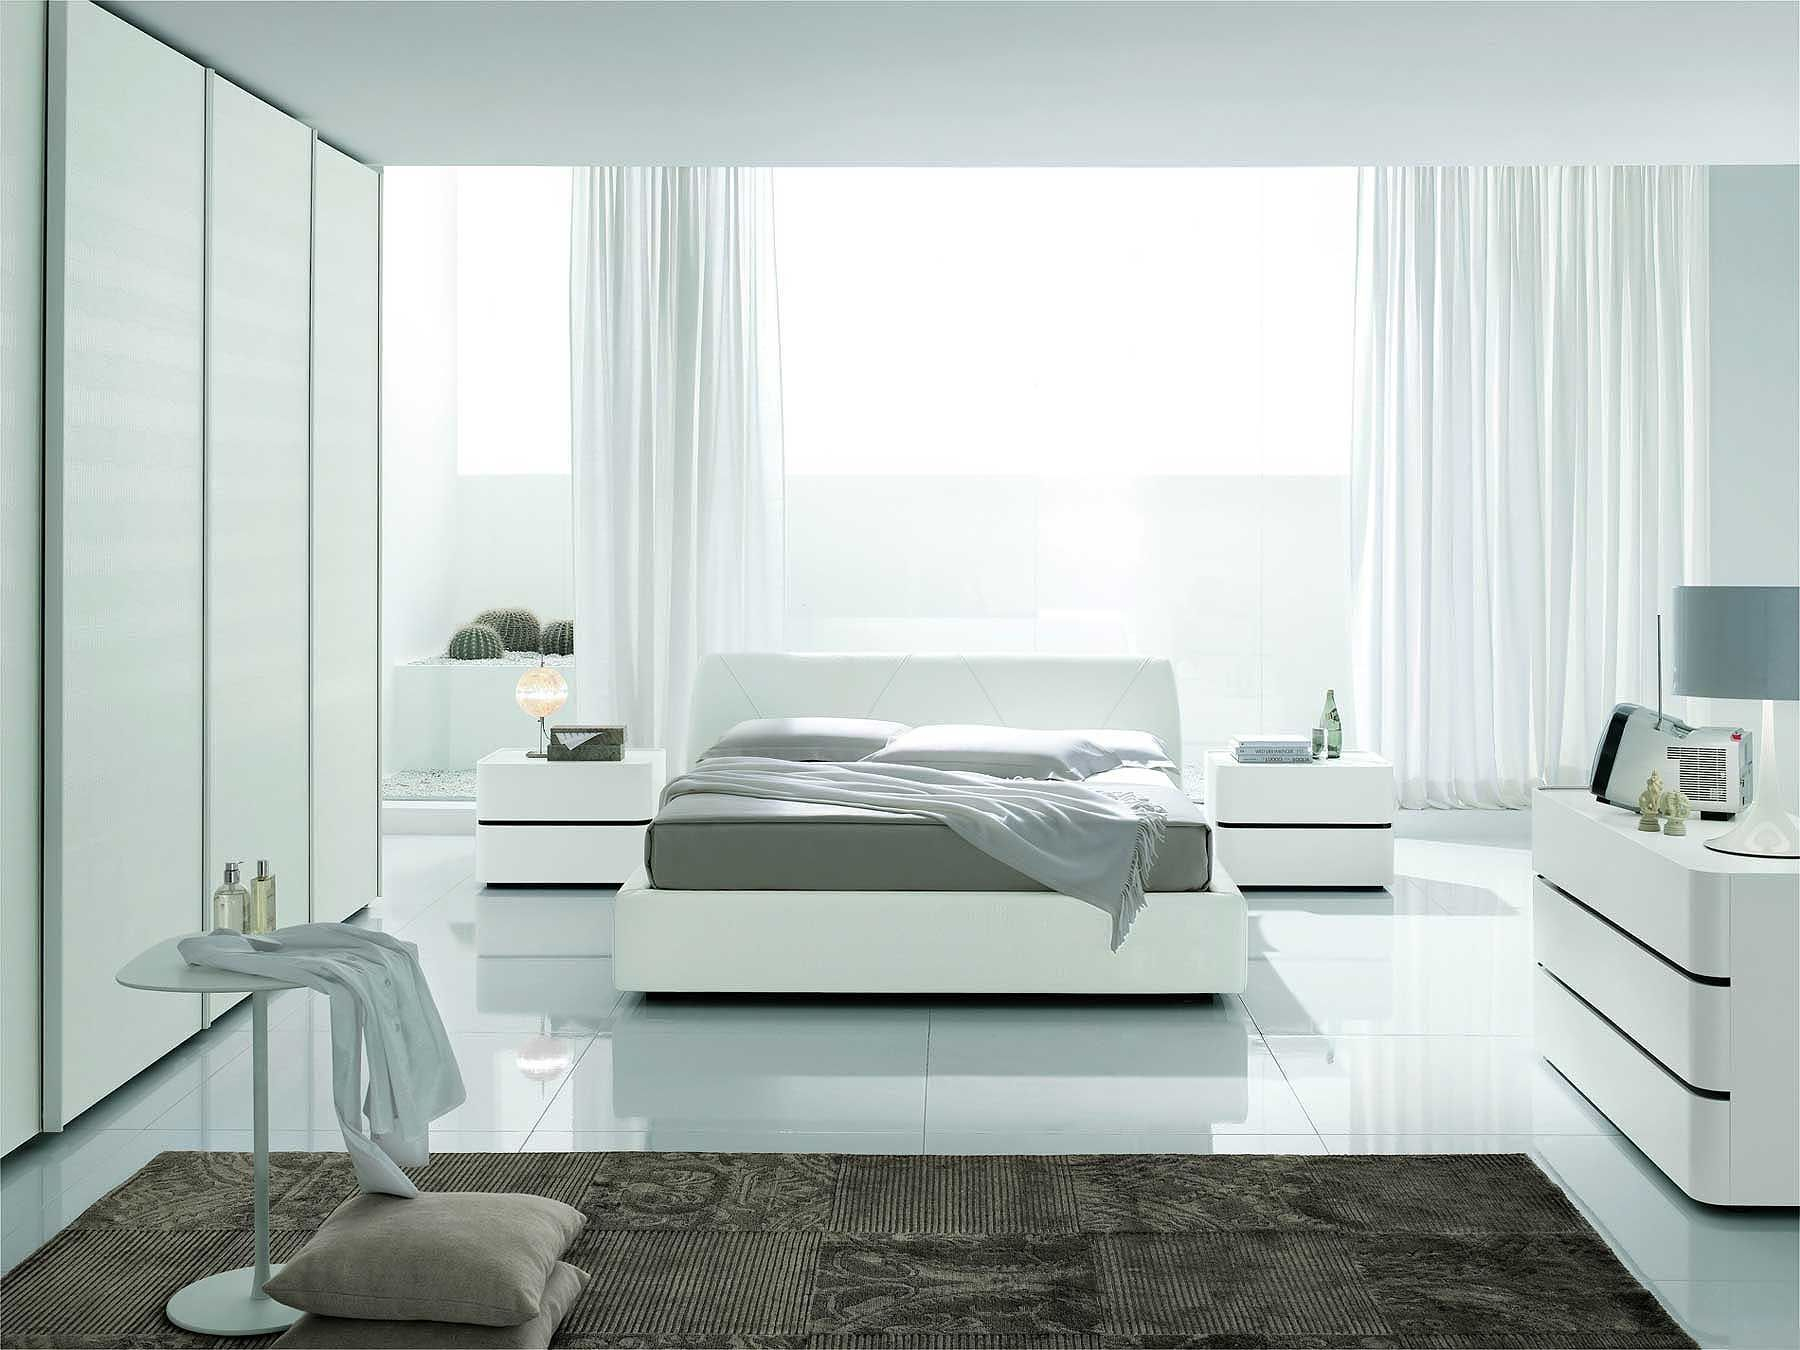 Bright Natural Lighting Inside Modern Bedroom Ideas With Comfy Bed within 11 Genius Designs of How to Build White Modern Bedroom